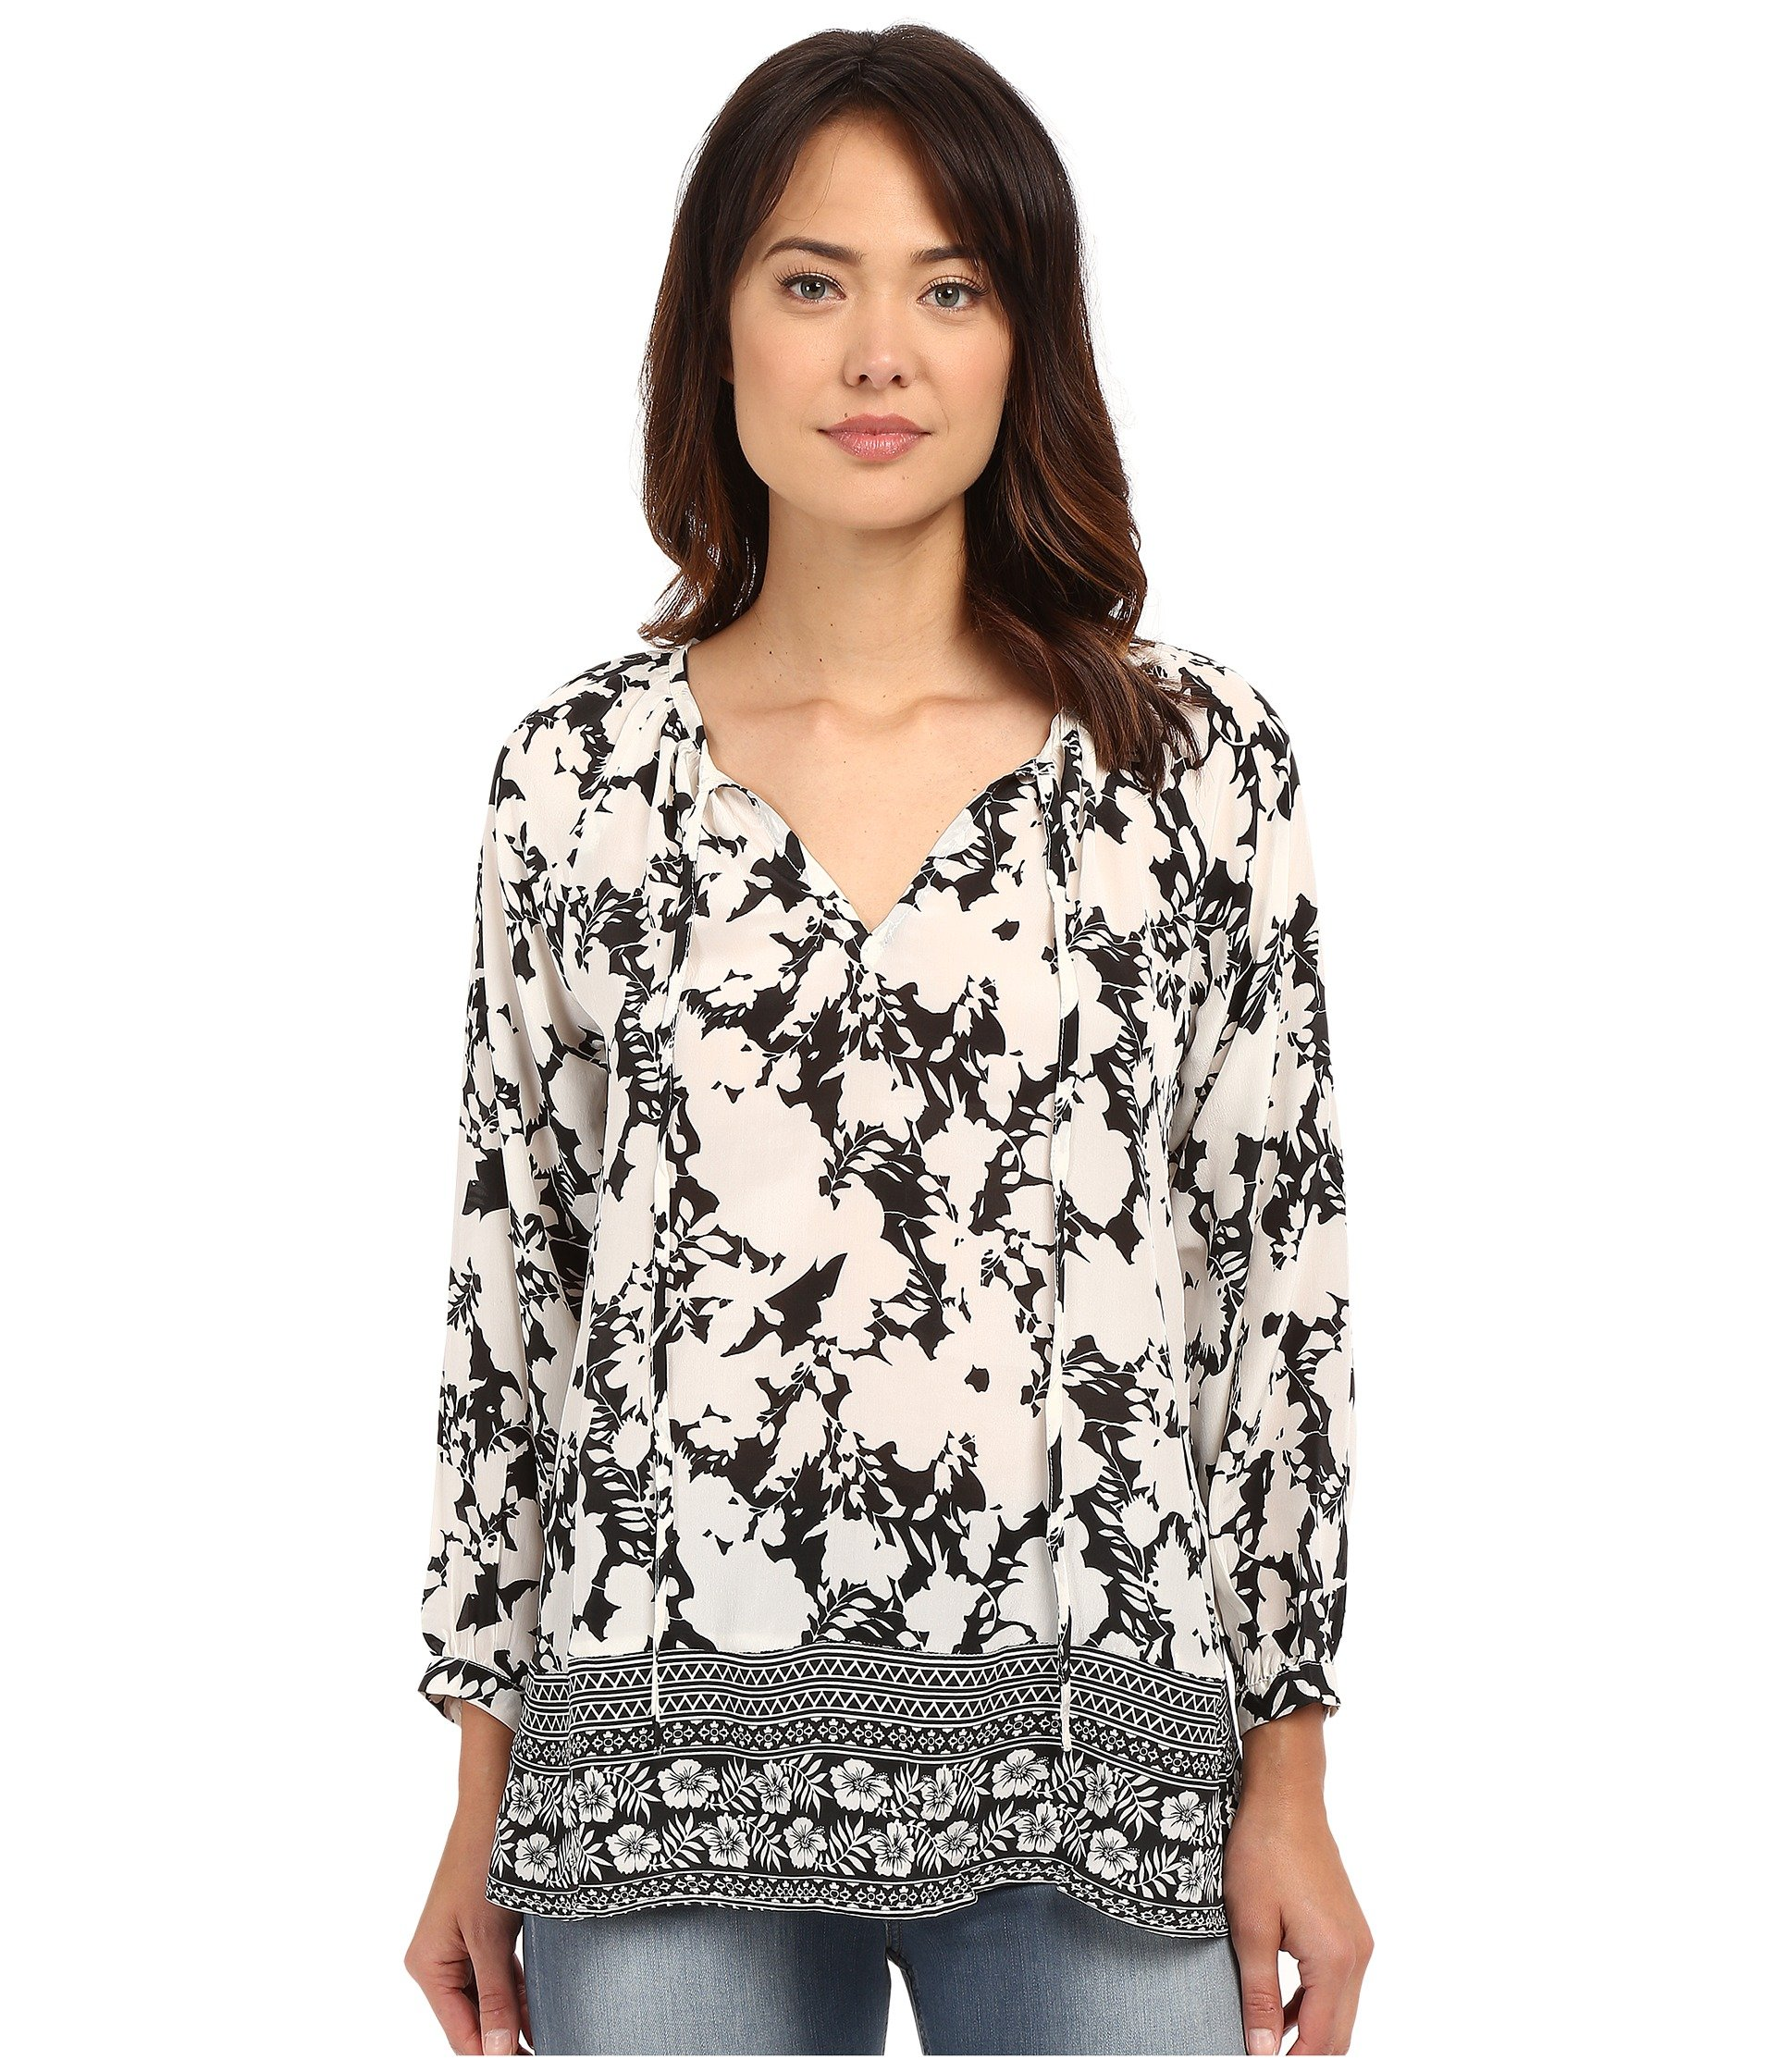 Tolani Megan Long Sleeve Blouse - 707.2KB